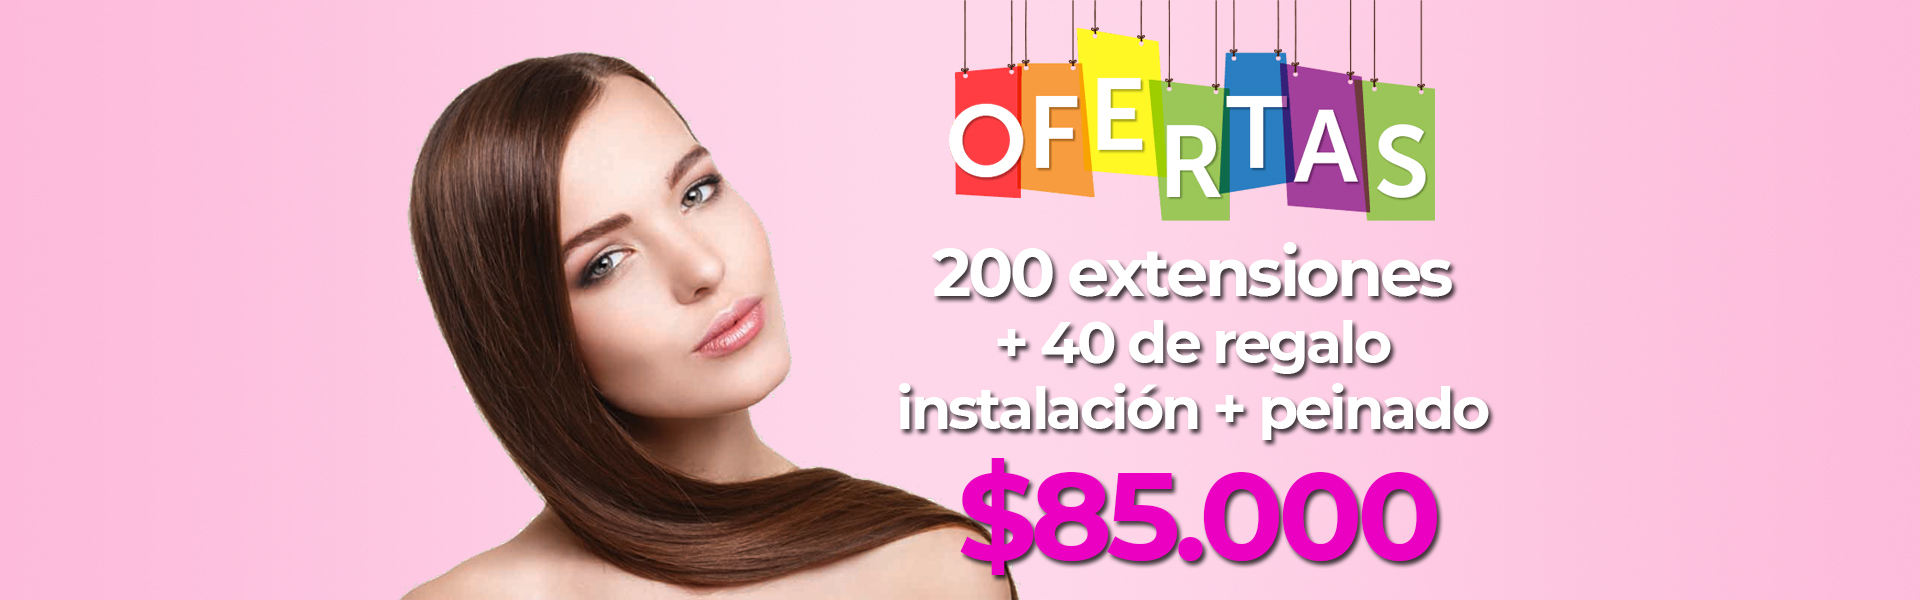 promo-extensiones-2019-anne-flower-v2